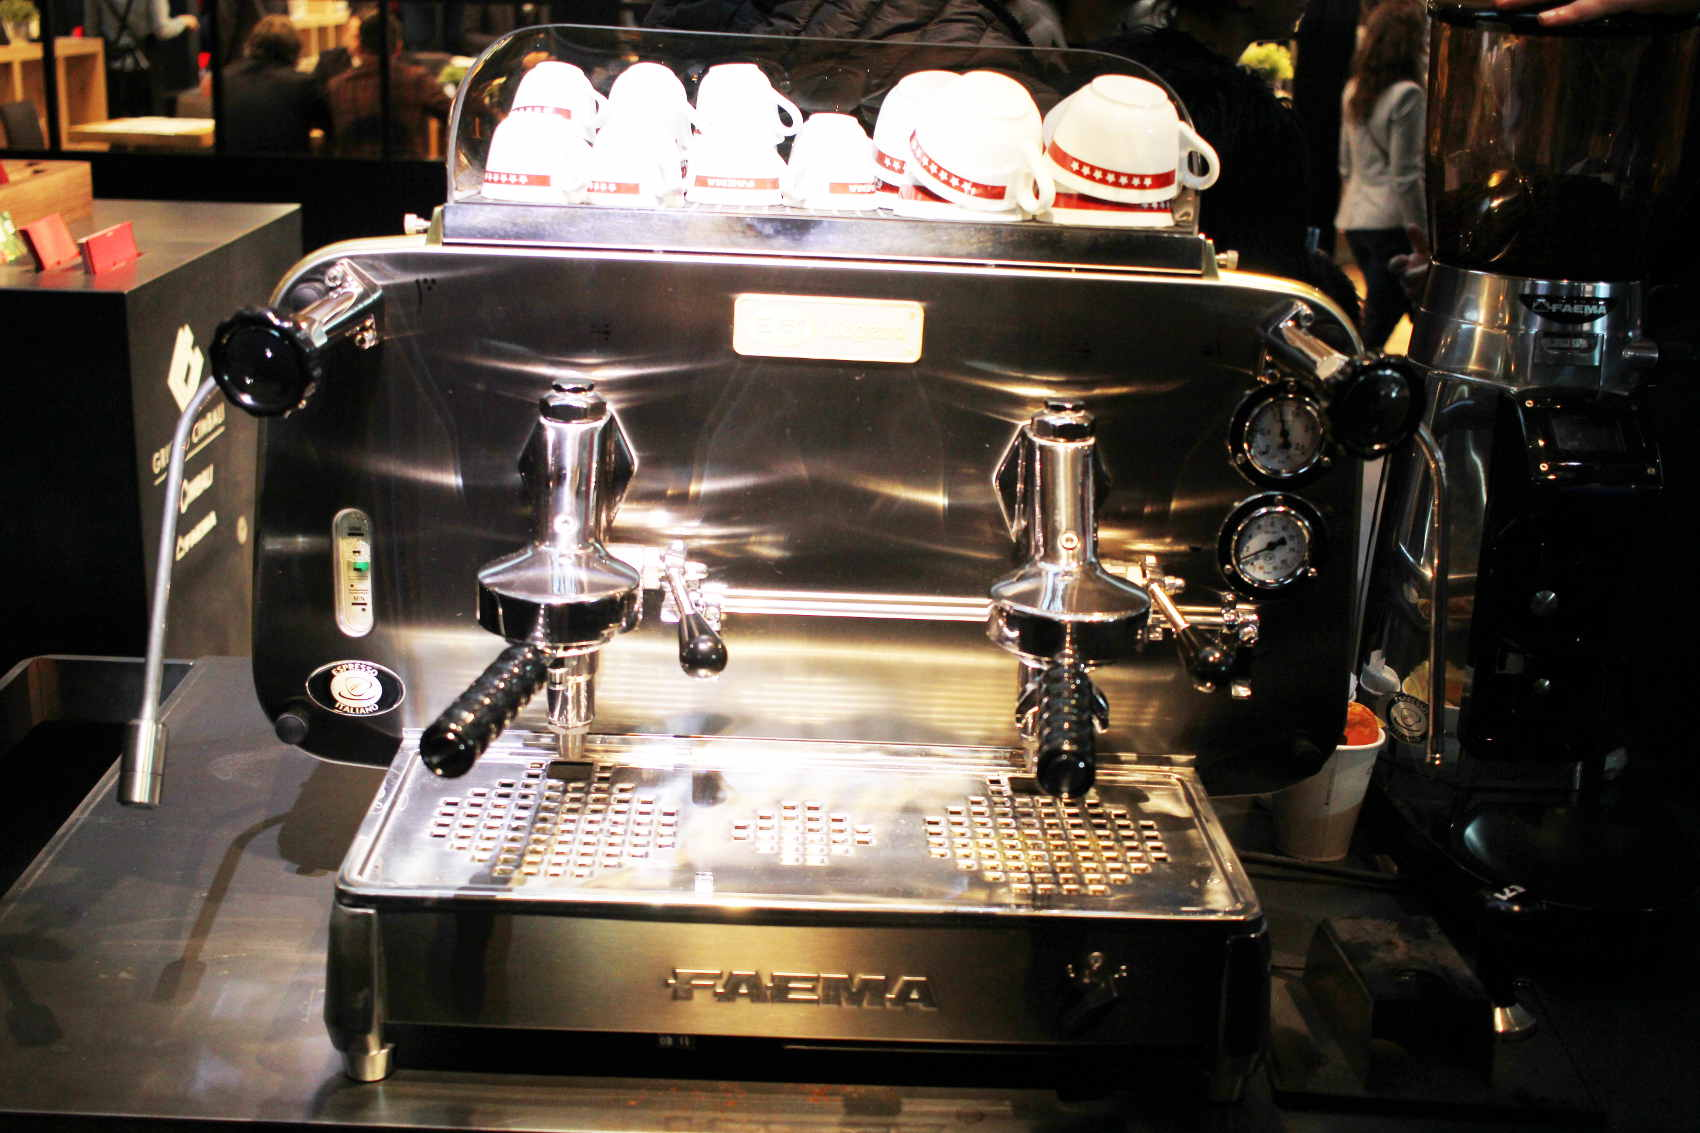 E61 faema legend home barista